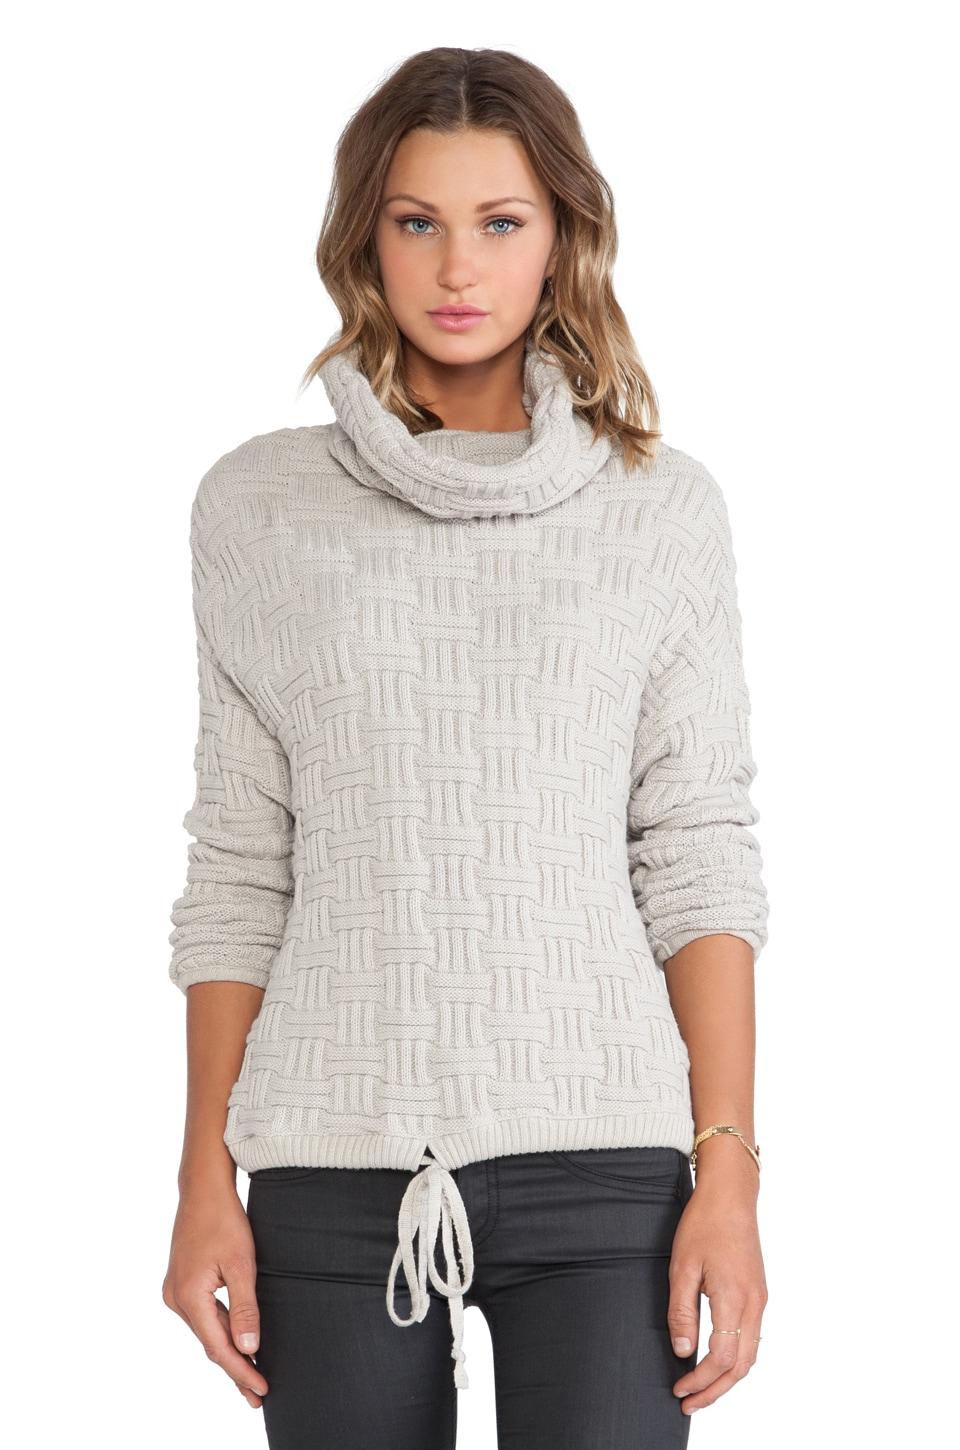 Bella Luxx Oversized Funnel Neck Pullover in Silver